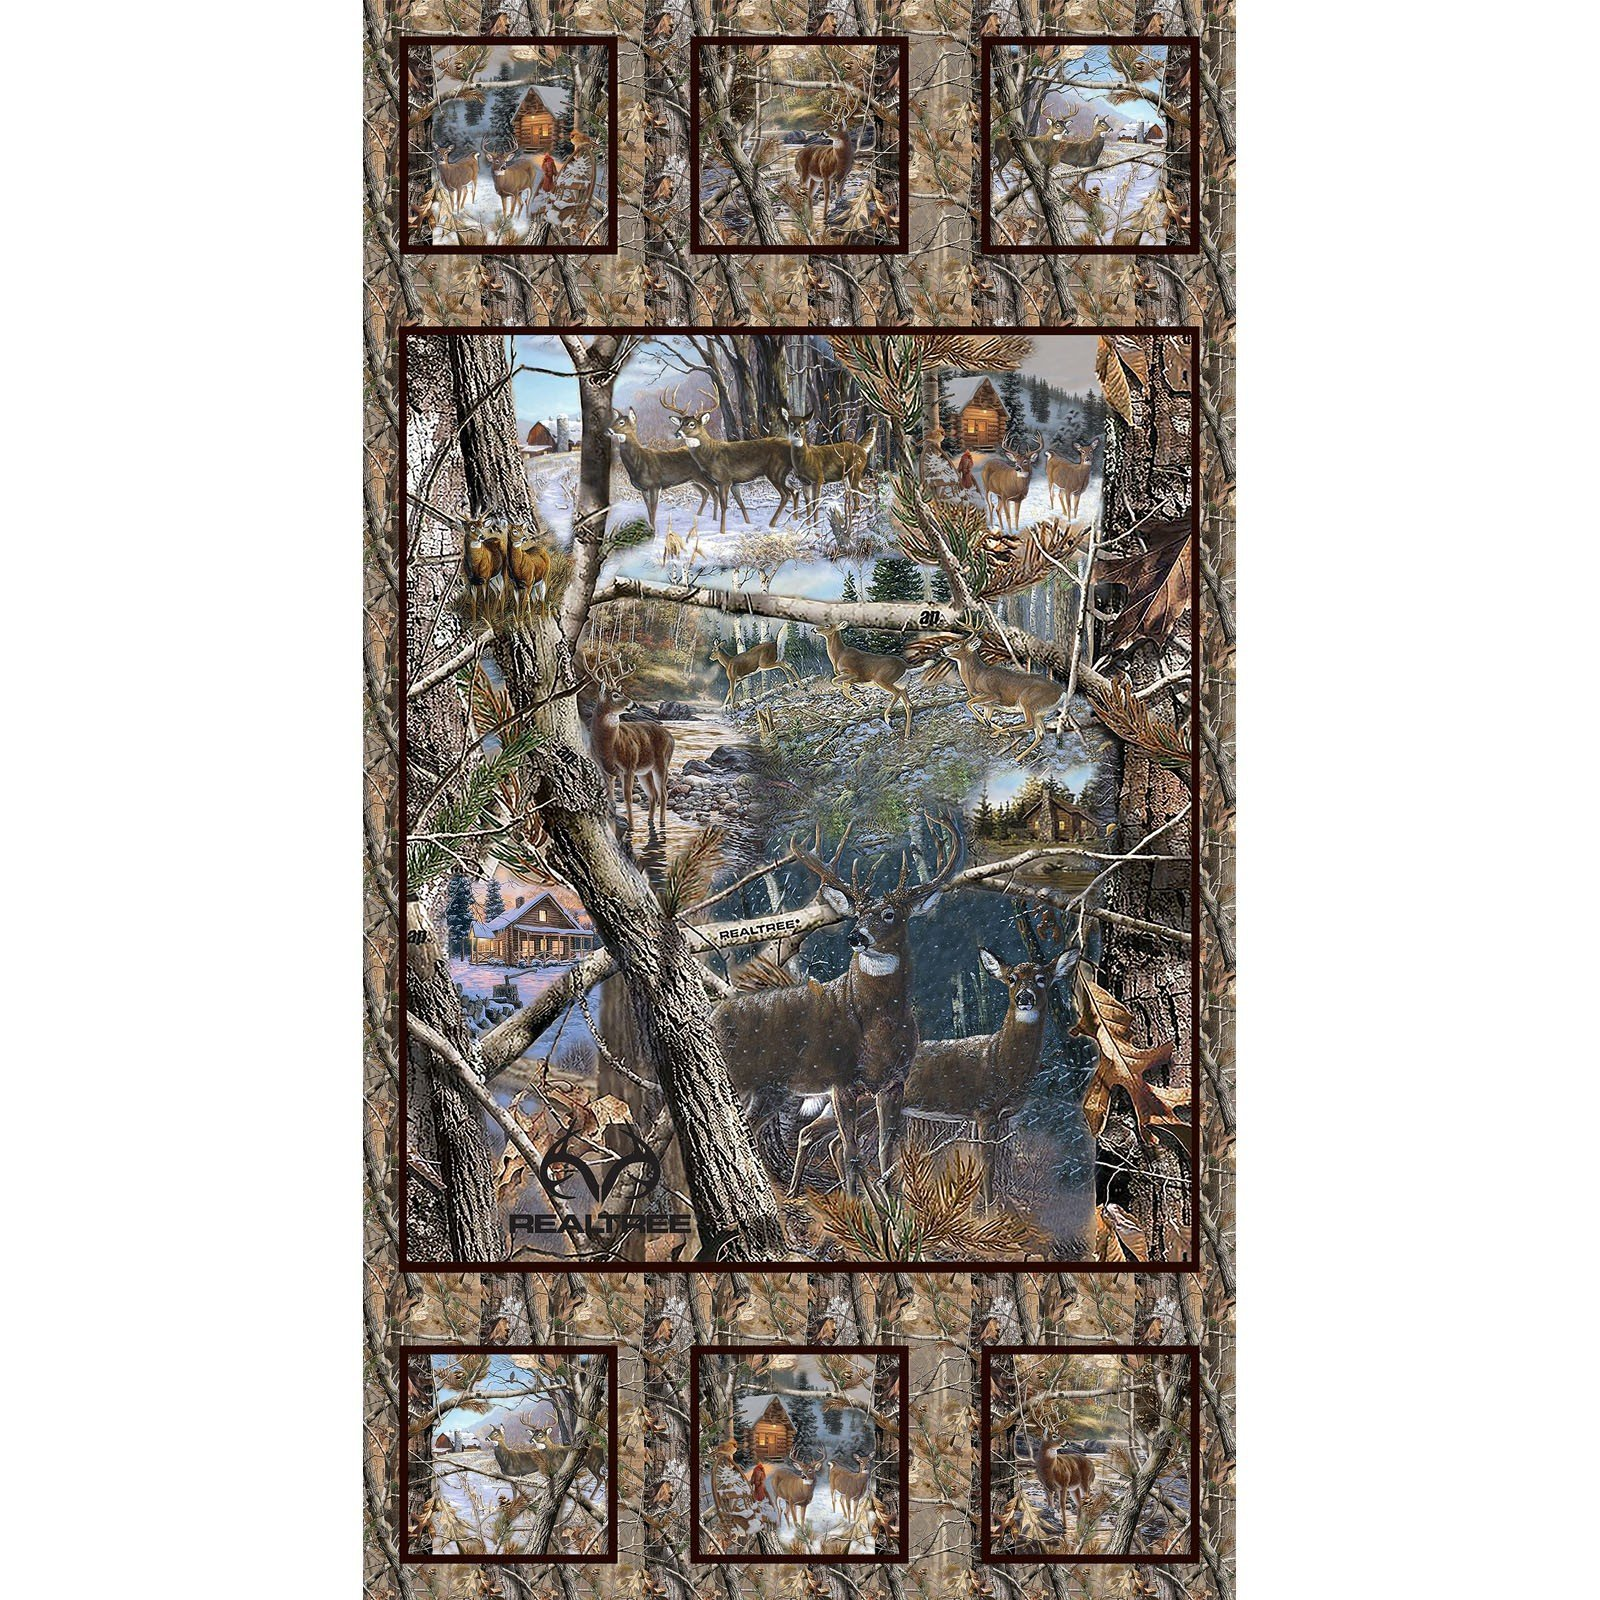 Realtree Winter Panel - Deer `